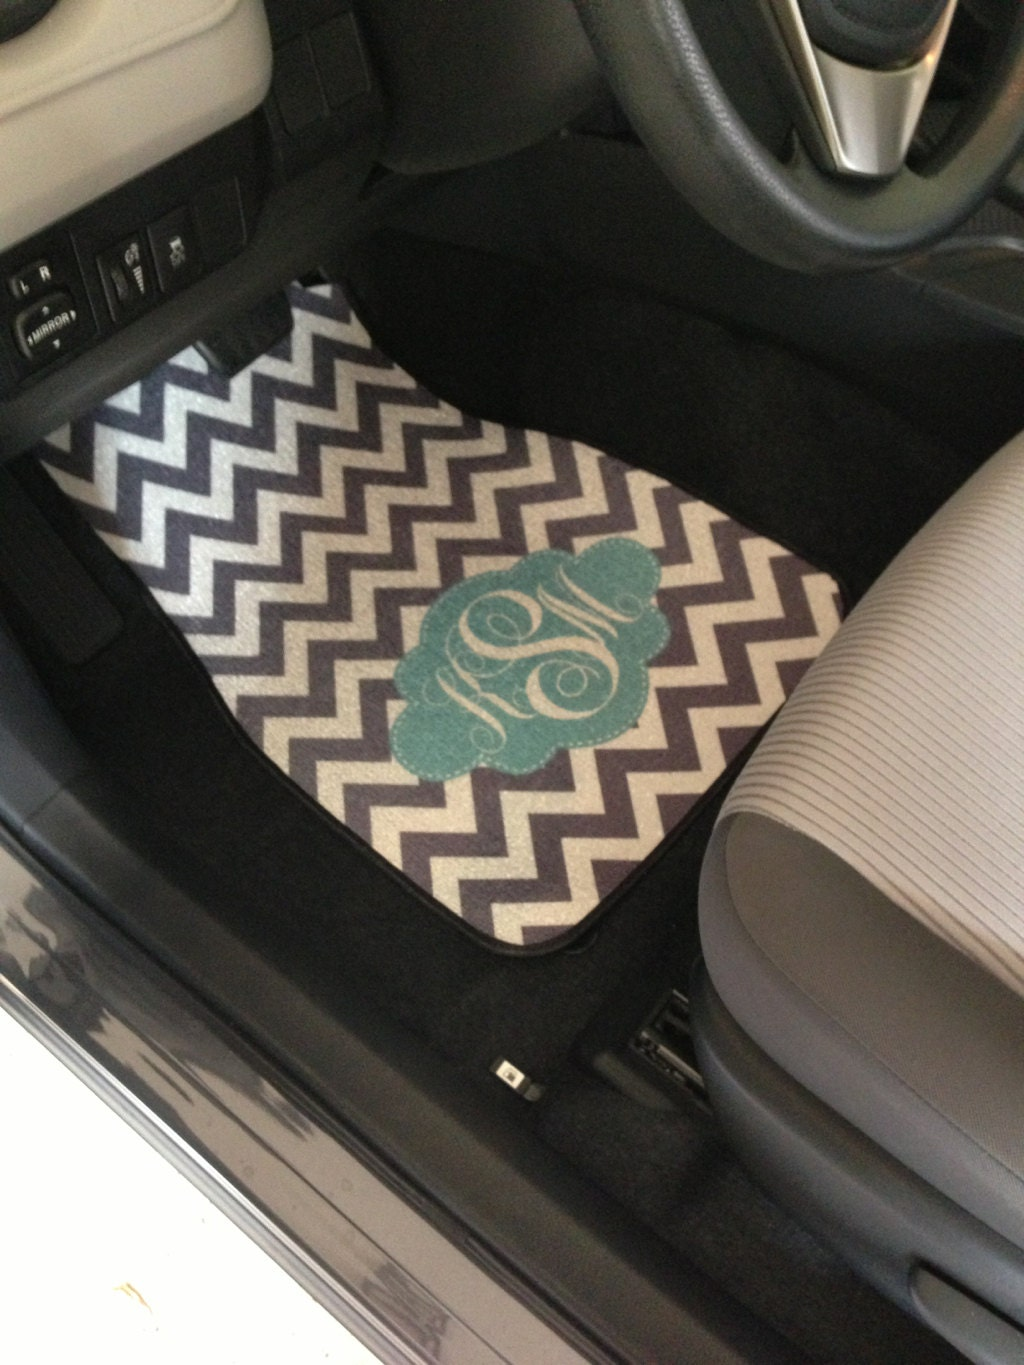 Floor mats dream cars - Car Mats Monogrammed Gifts Personalized Custom Floor Mats Cute Car Accessories For Women Car Mat Monogram Gift Ideas Sweet 16 Car Decor